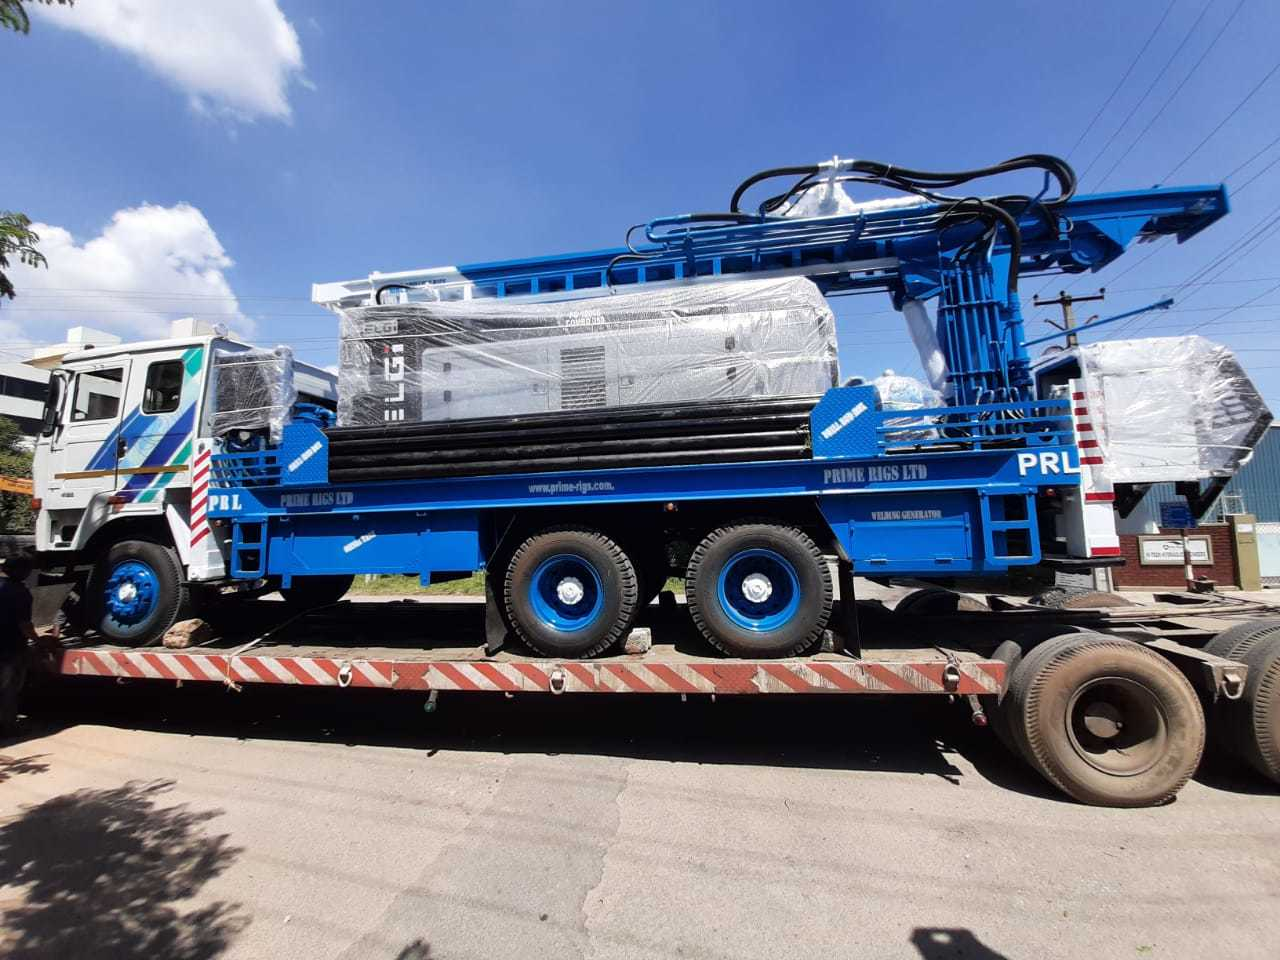 Brand New Water Well Rig Pdthr-350